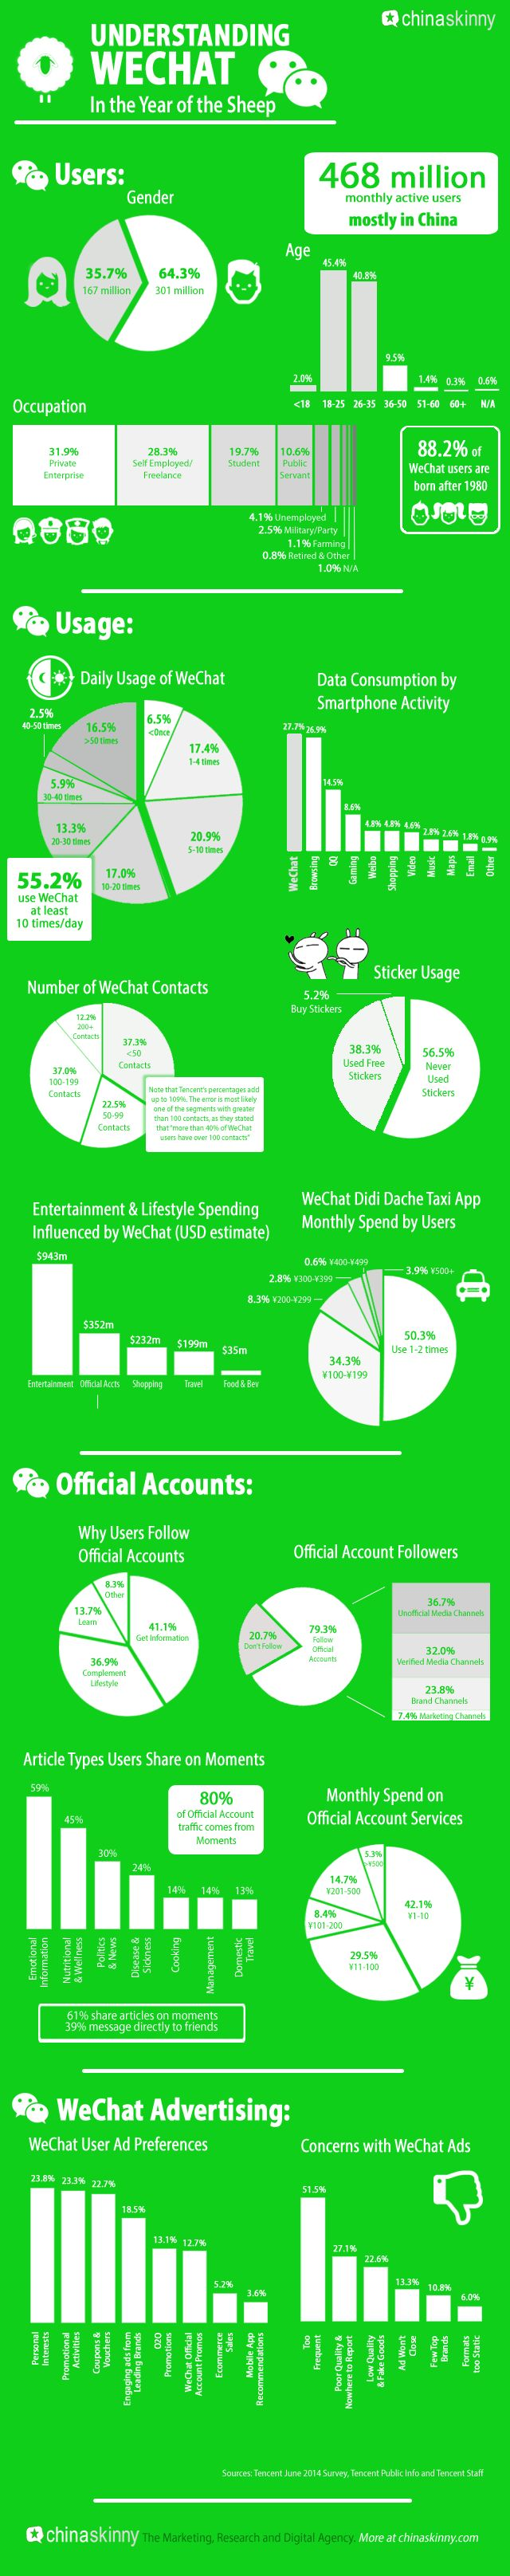 Infograph: WeChat User Demographics, Usage, Official Accounts & Advertising | China Skinny